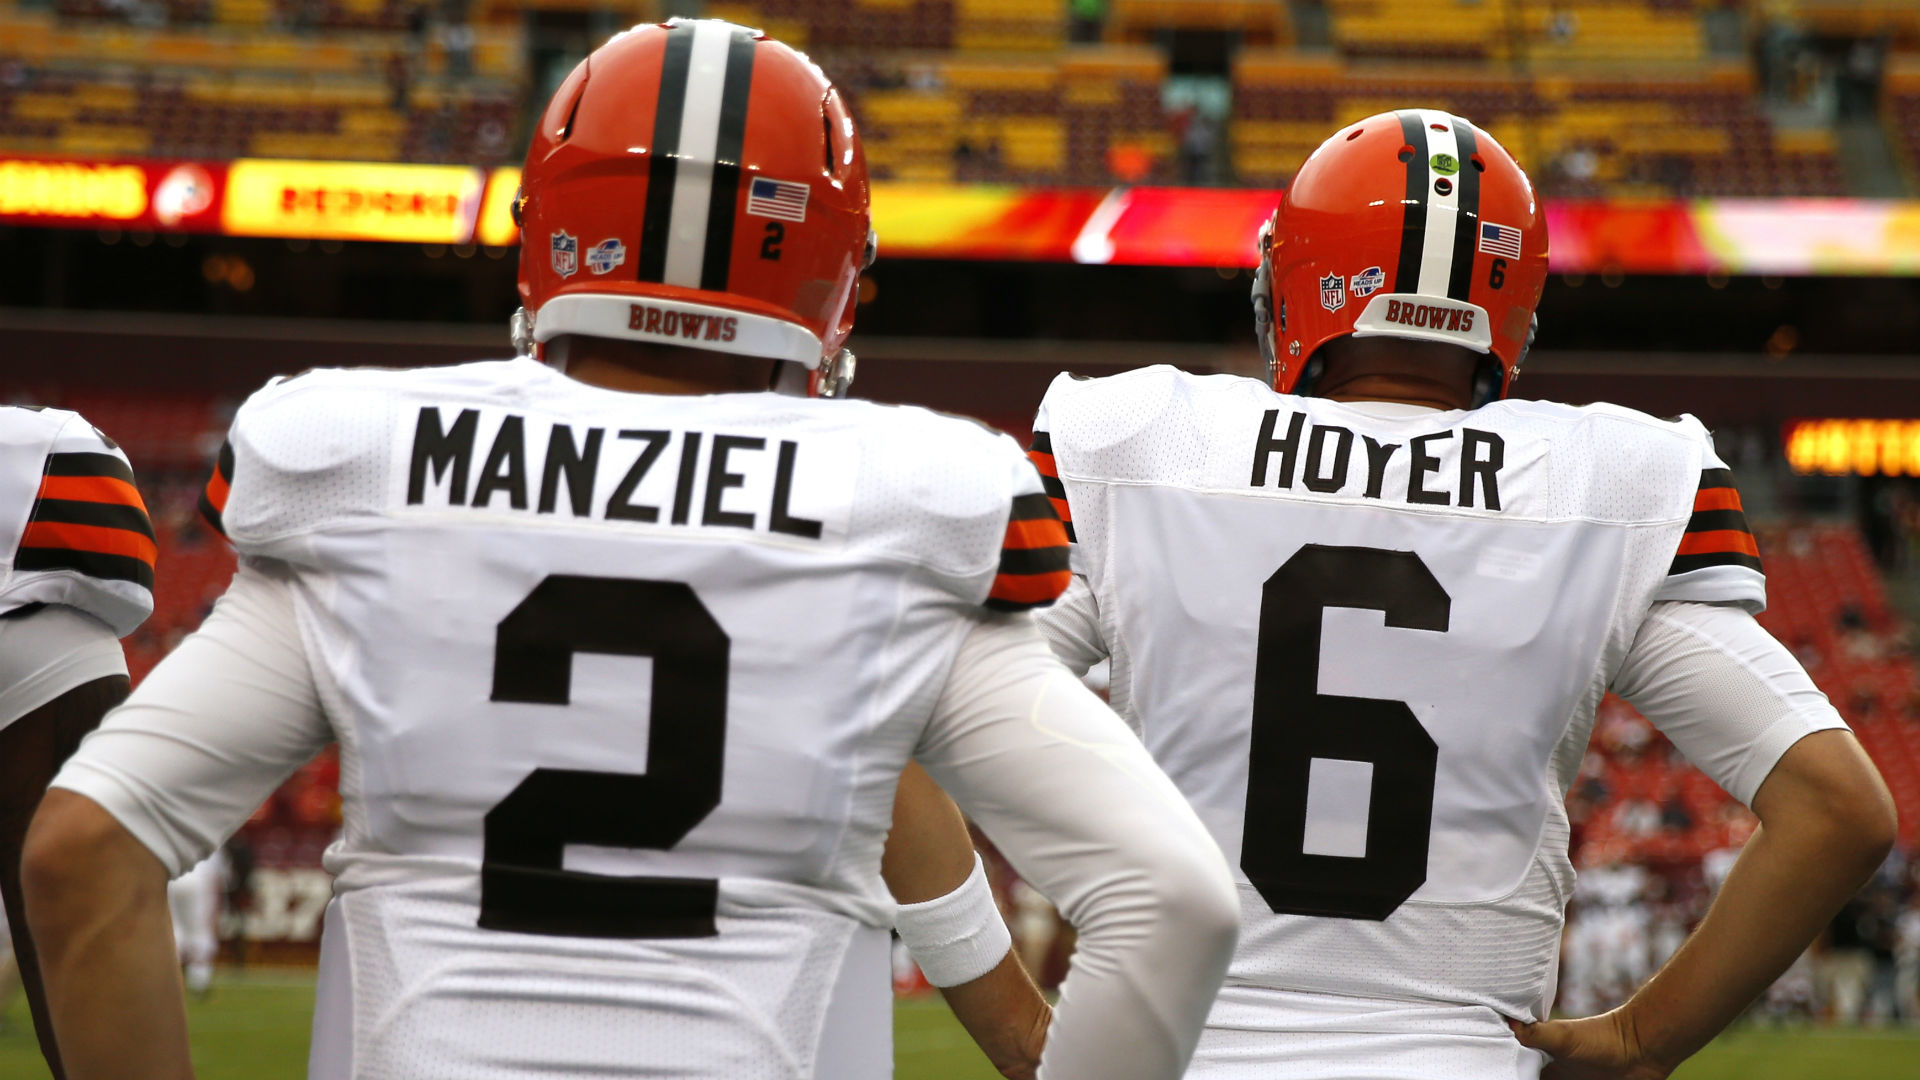 Fantasy owners should be pleased with Brian Hoyer as the starter